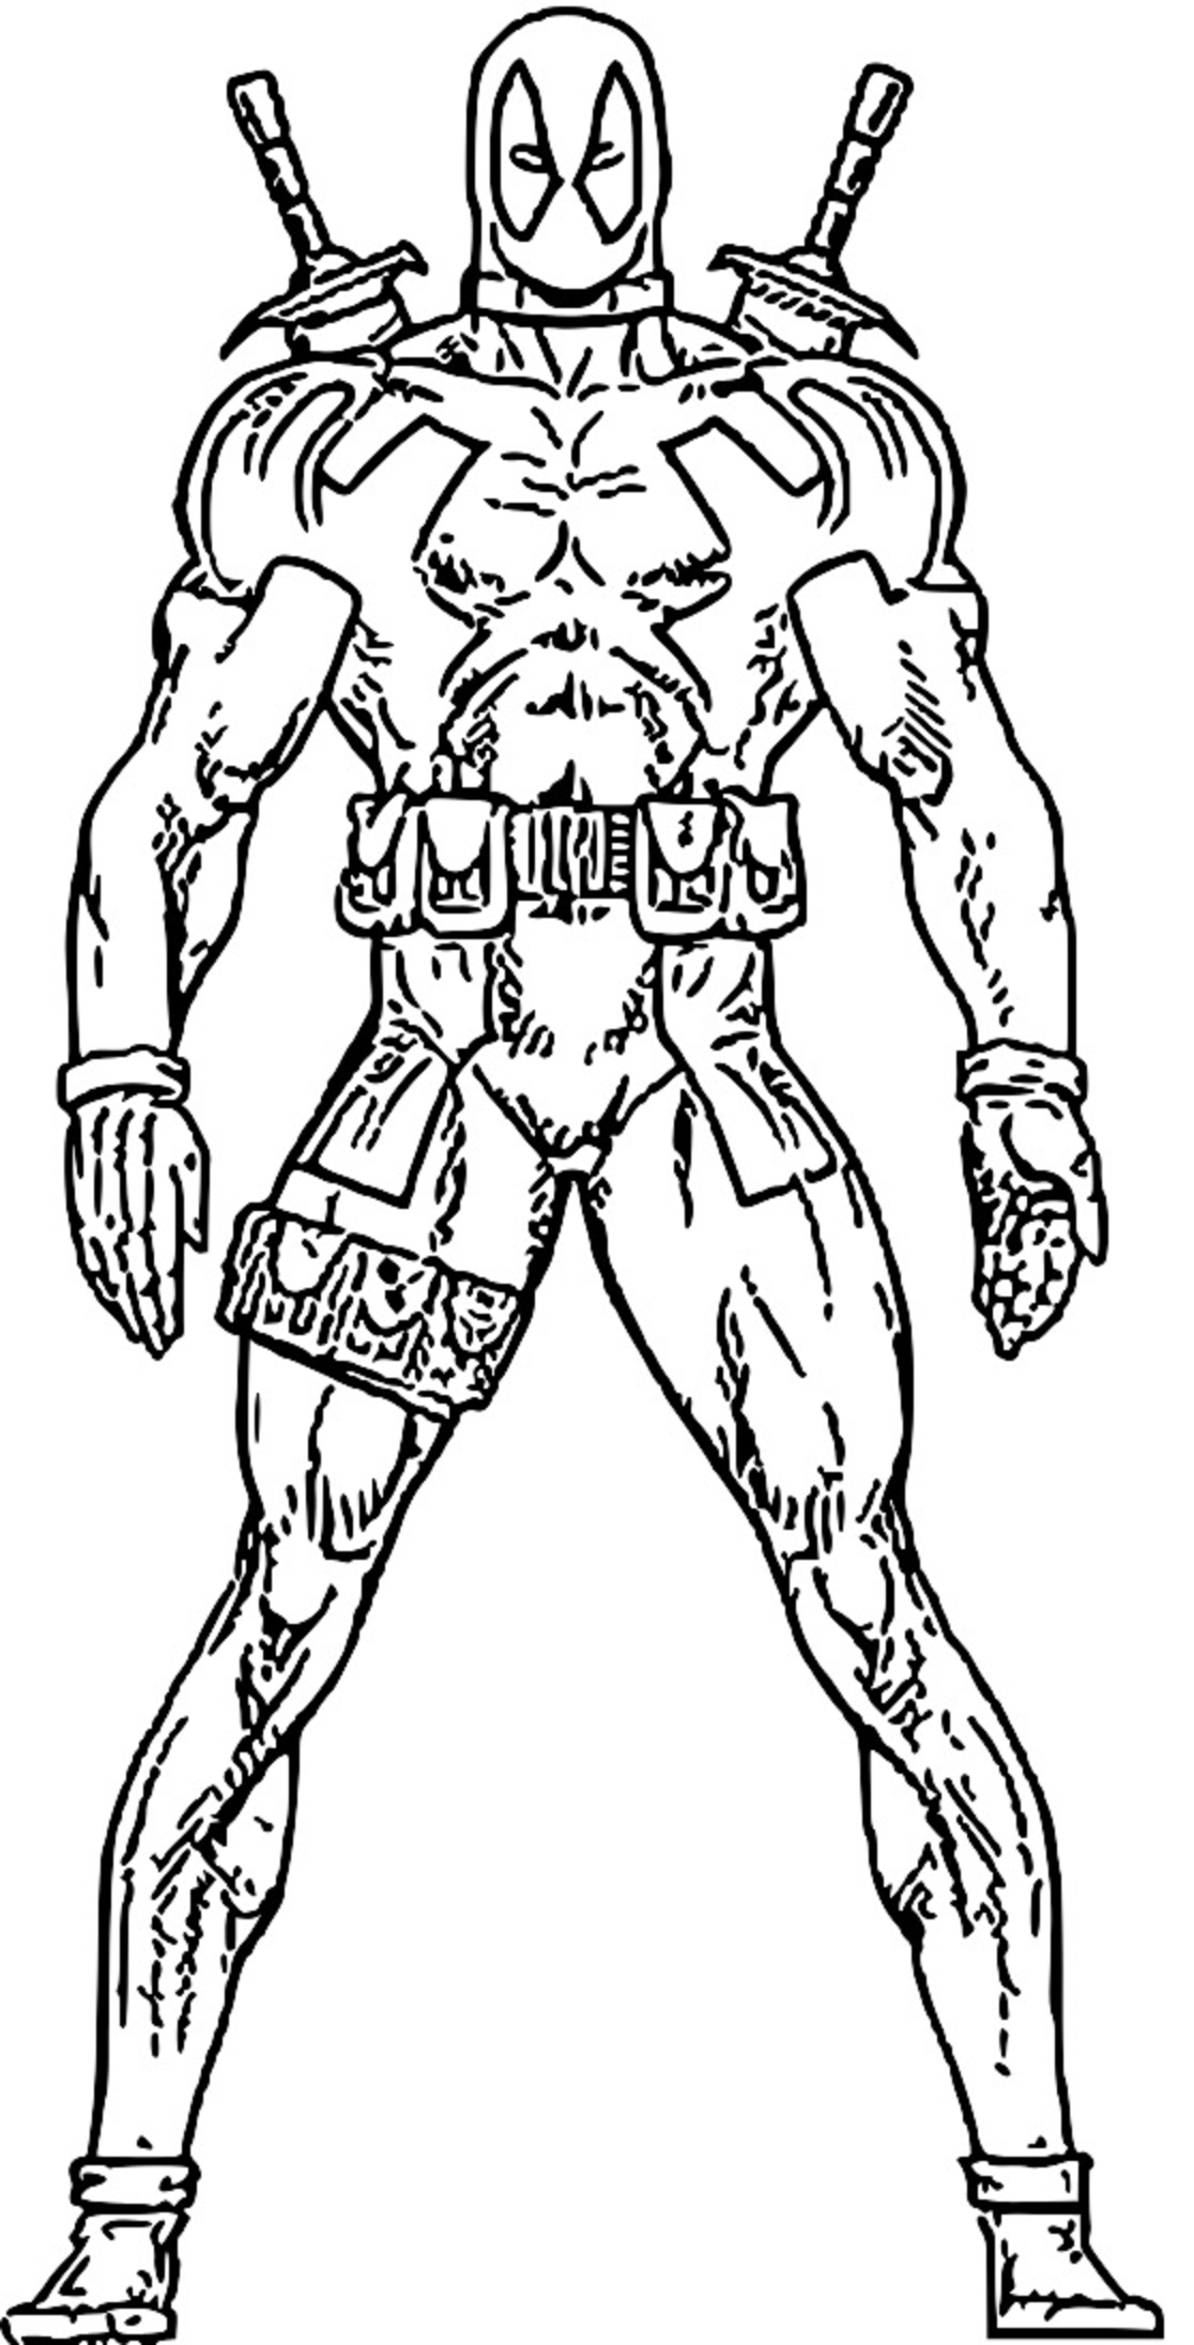 Cartoon Superheroes Coloring Pages At Getcolorings